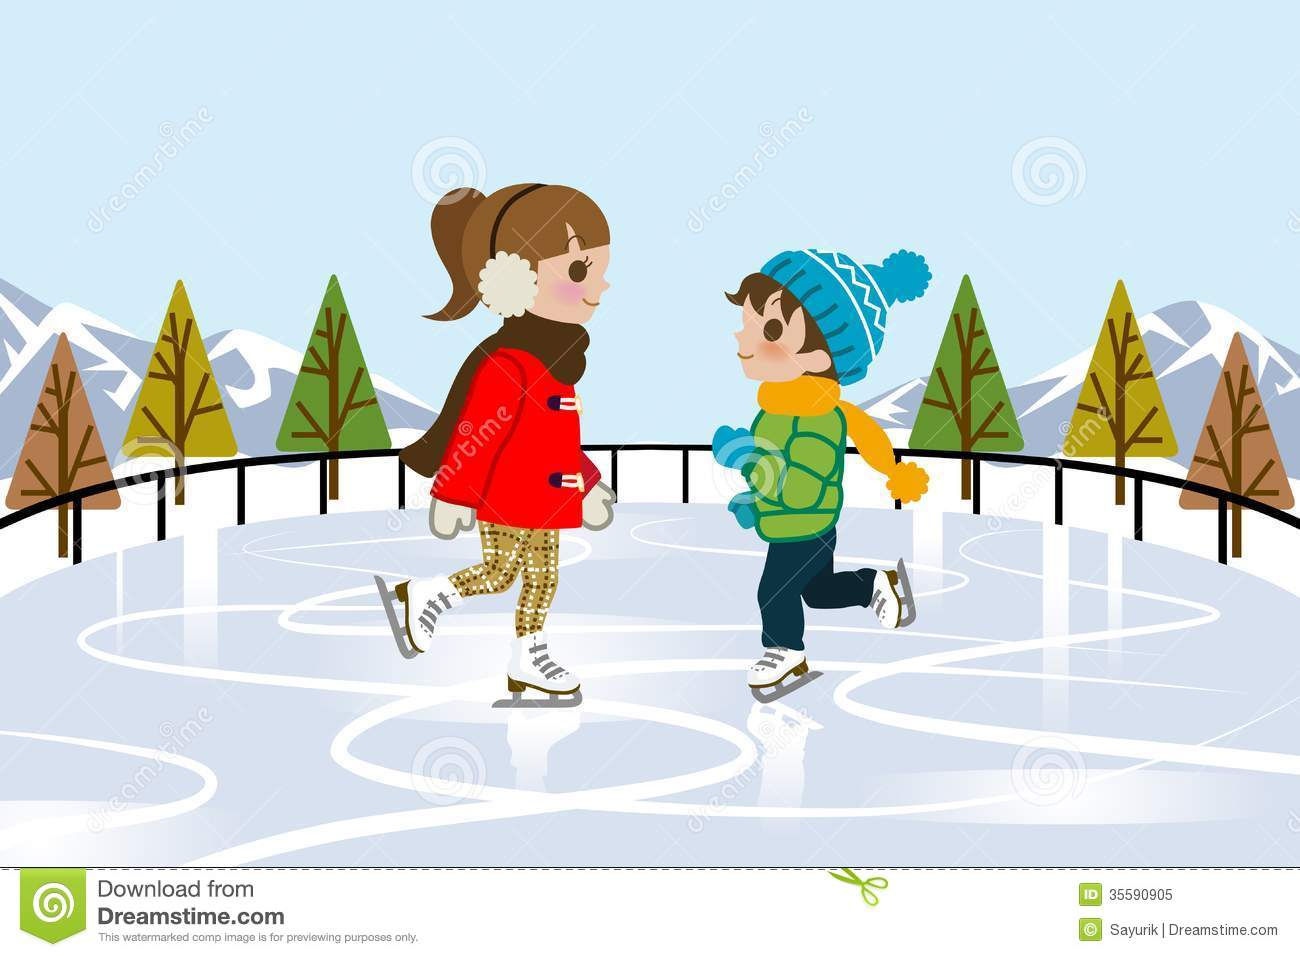 Kids Ice Skating In Nature Royalty Free Stock Photo - Image: 35590905